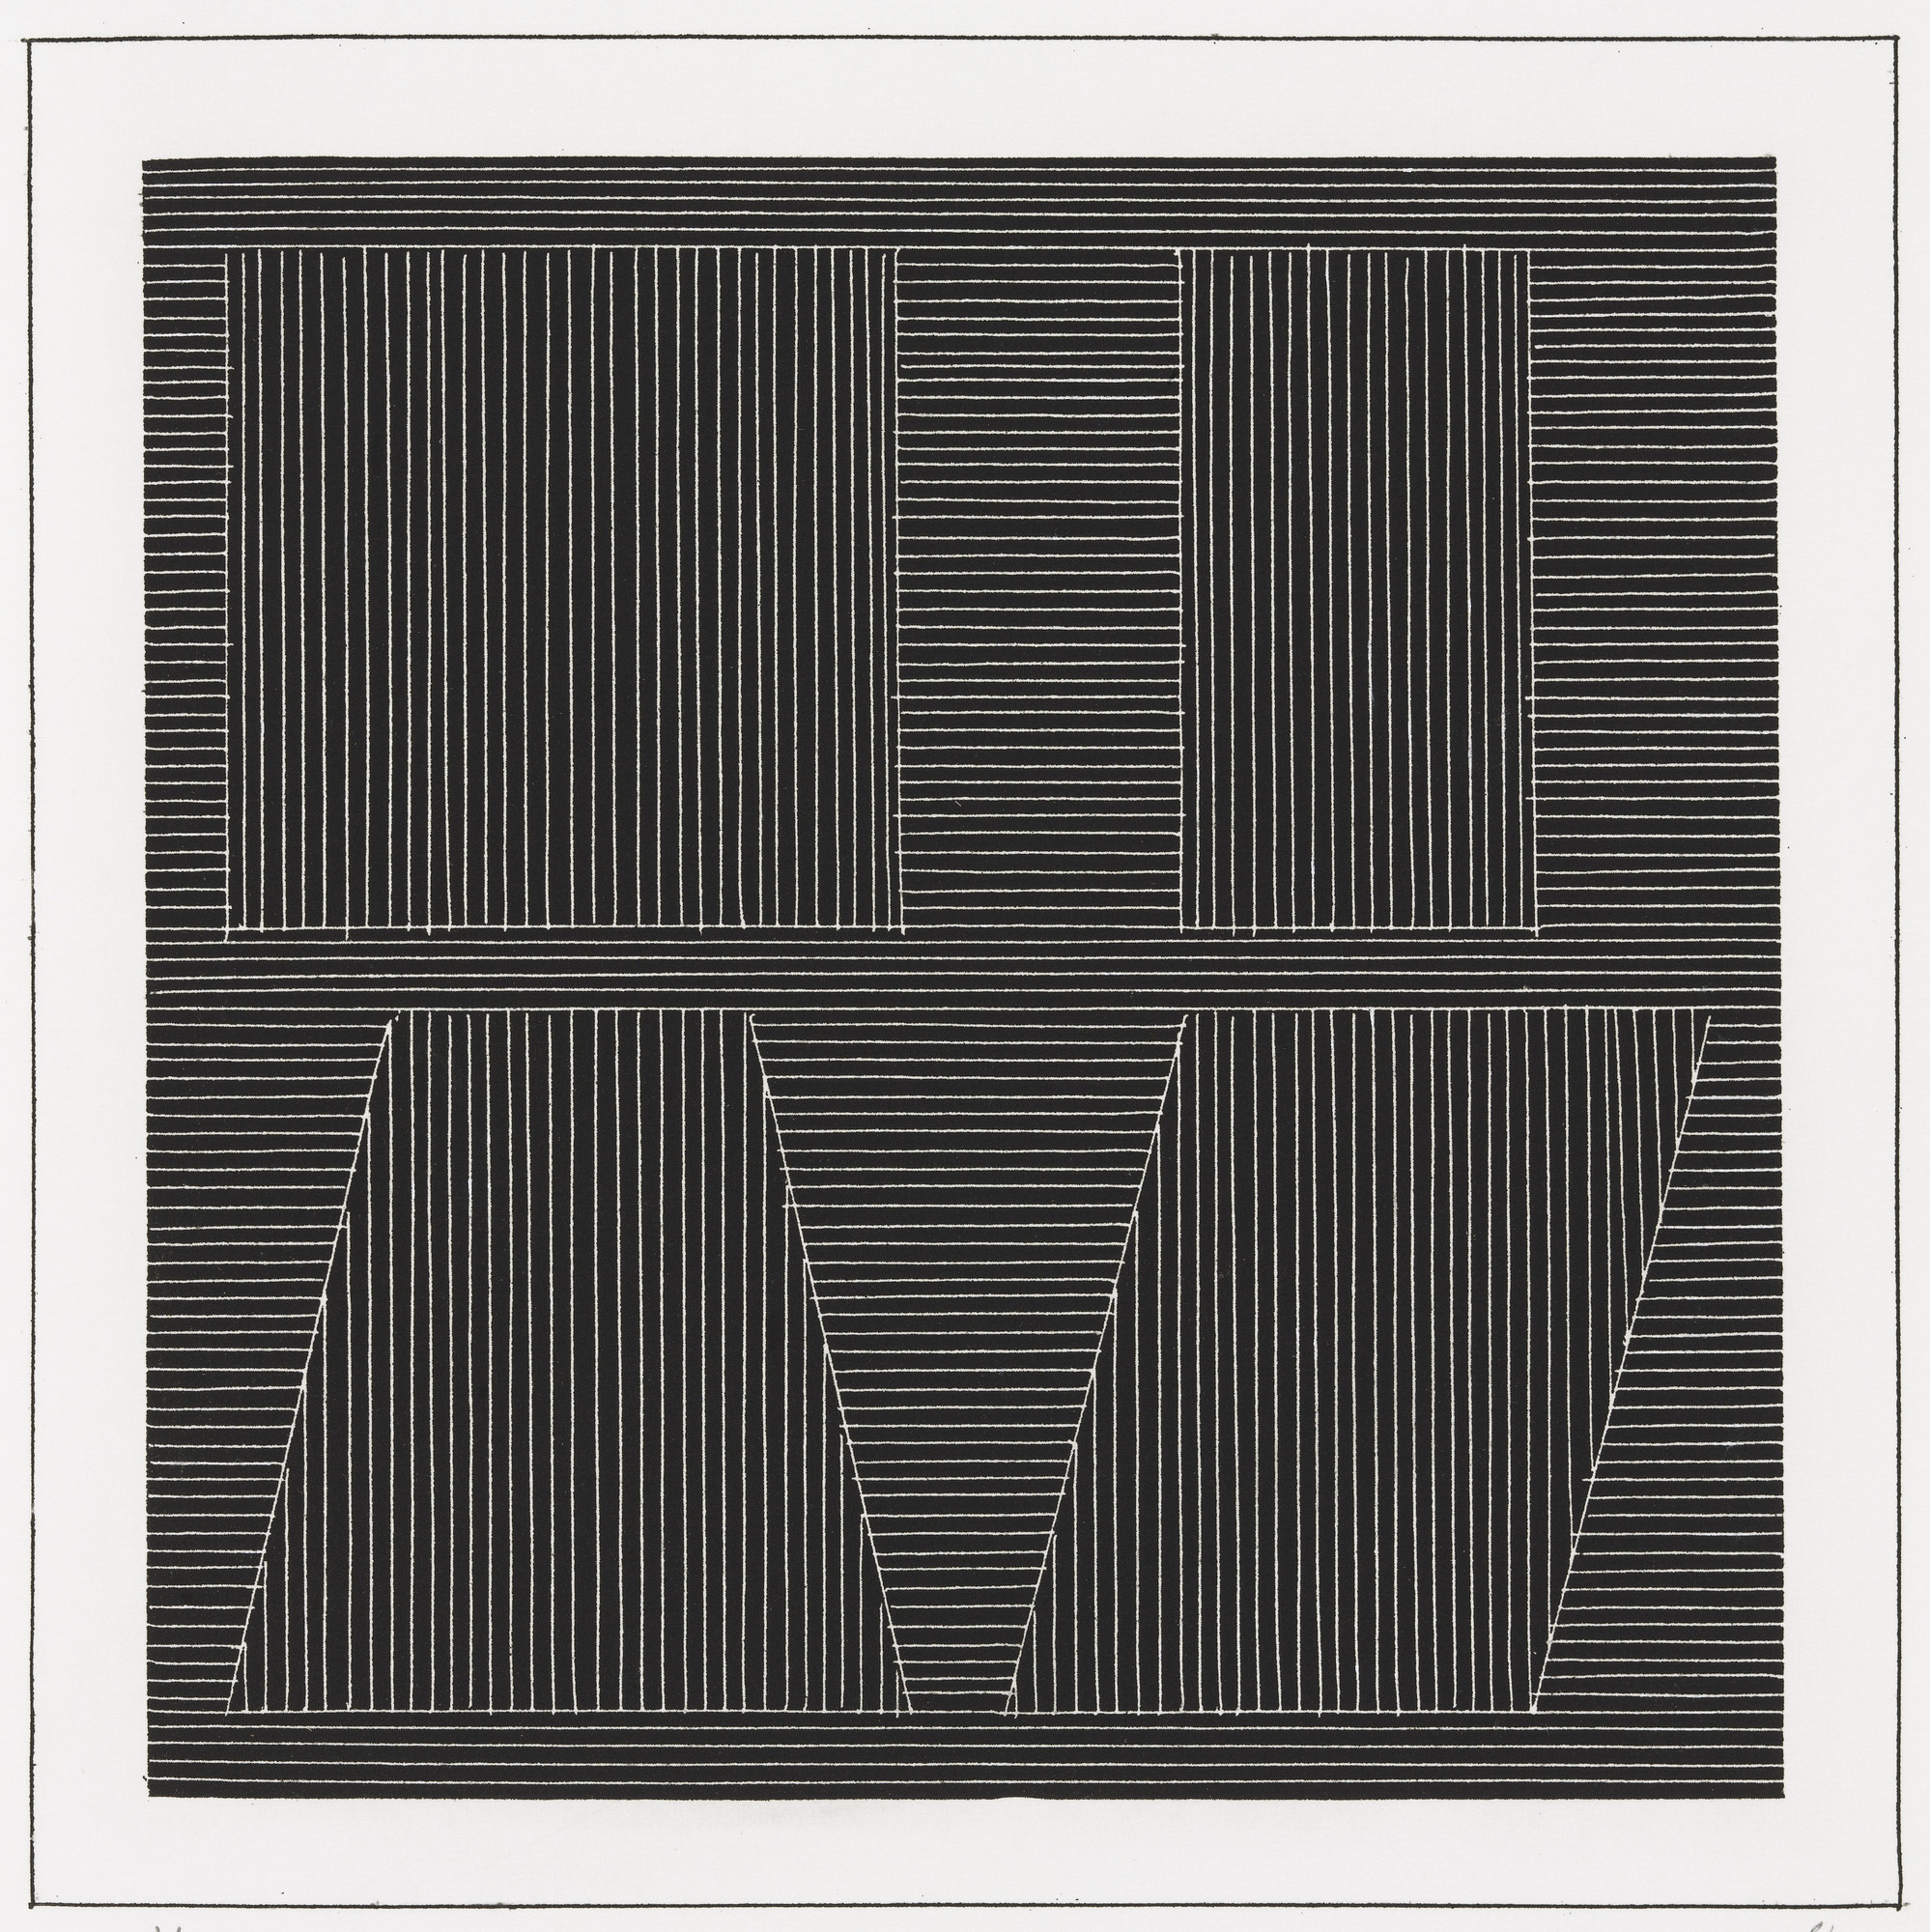 Sol LeWitt. Plate (folio 52) from Six Geometric Figures and All Their Combinations, Volume I. 1980